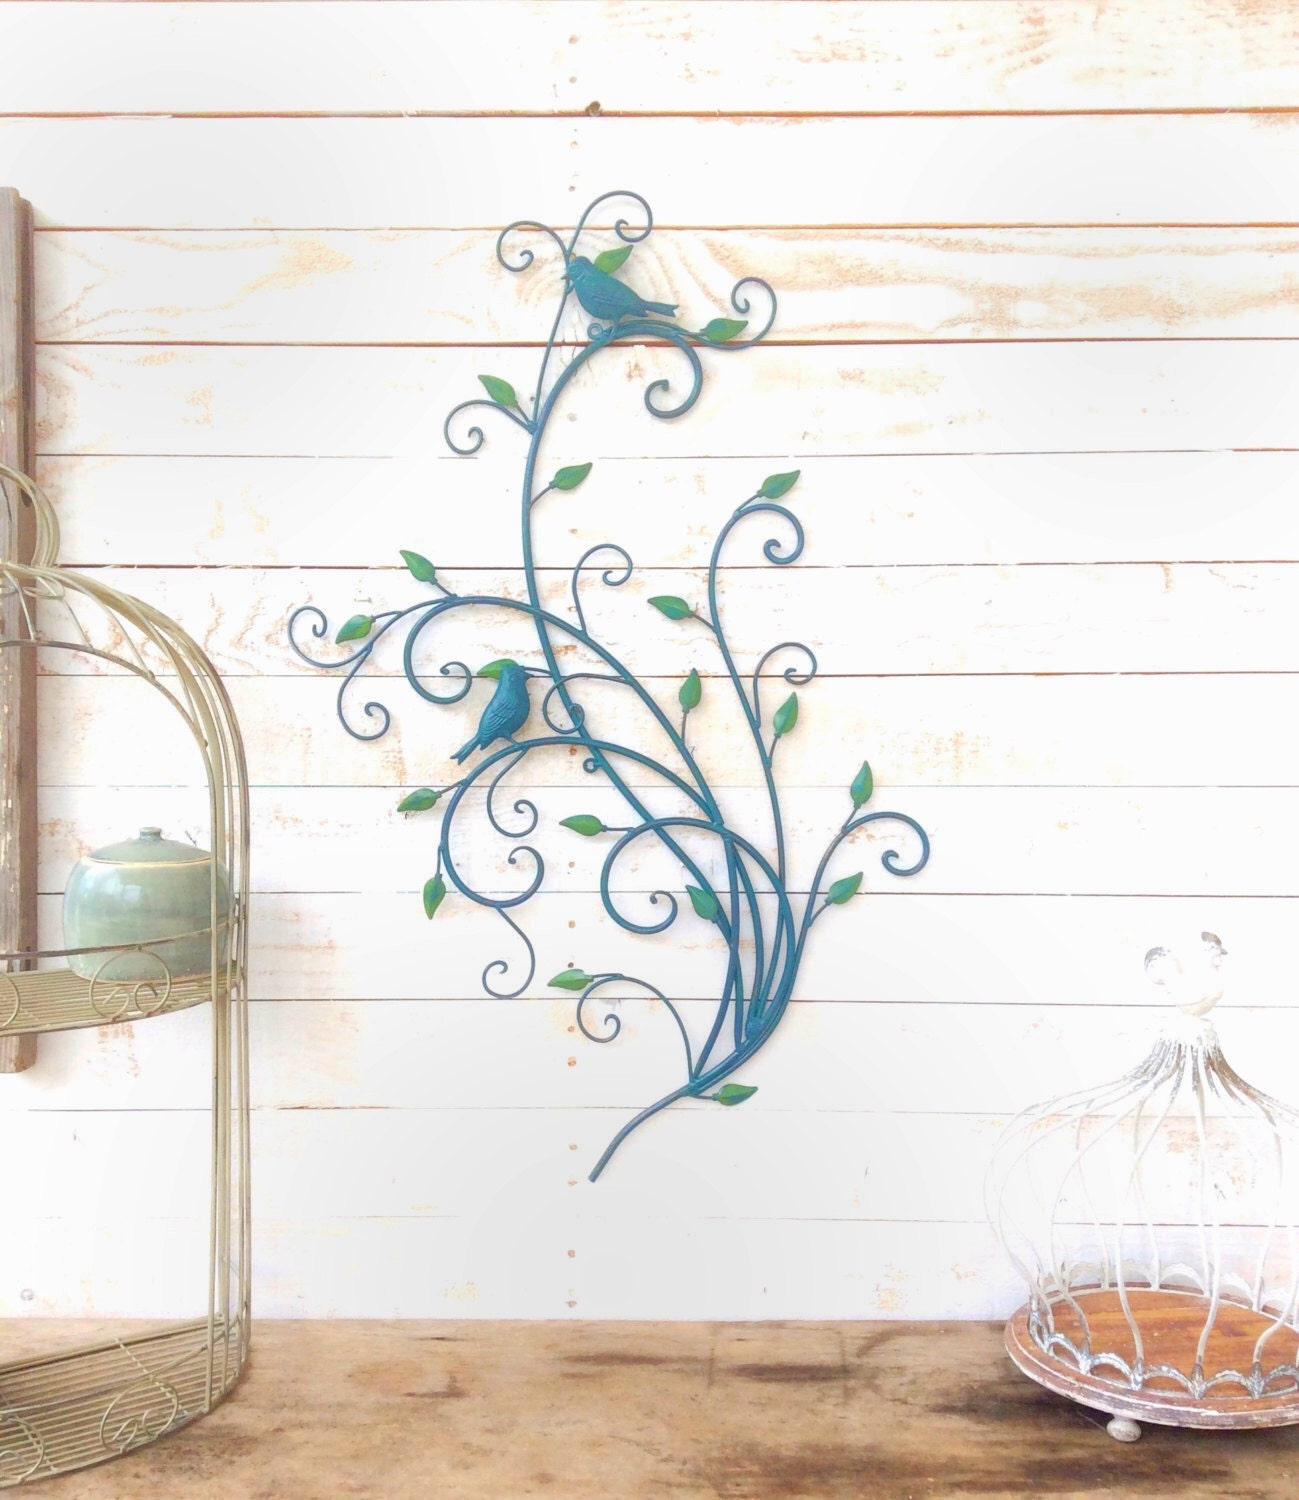 Iron bird wall decor home decor for the home wall art bird for Bird wall art